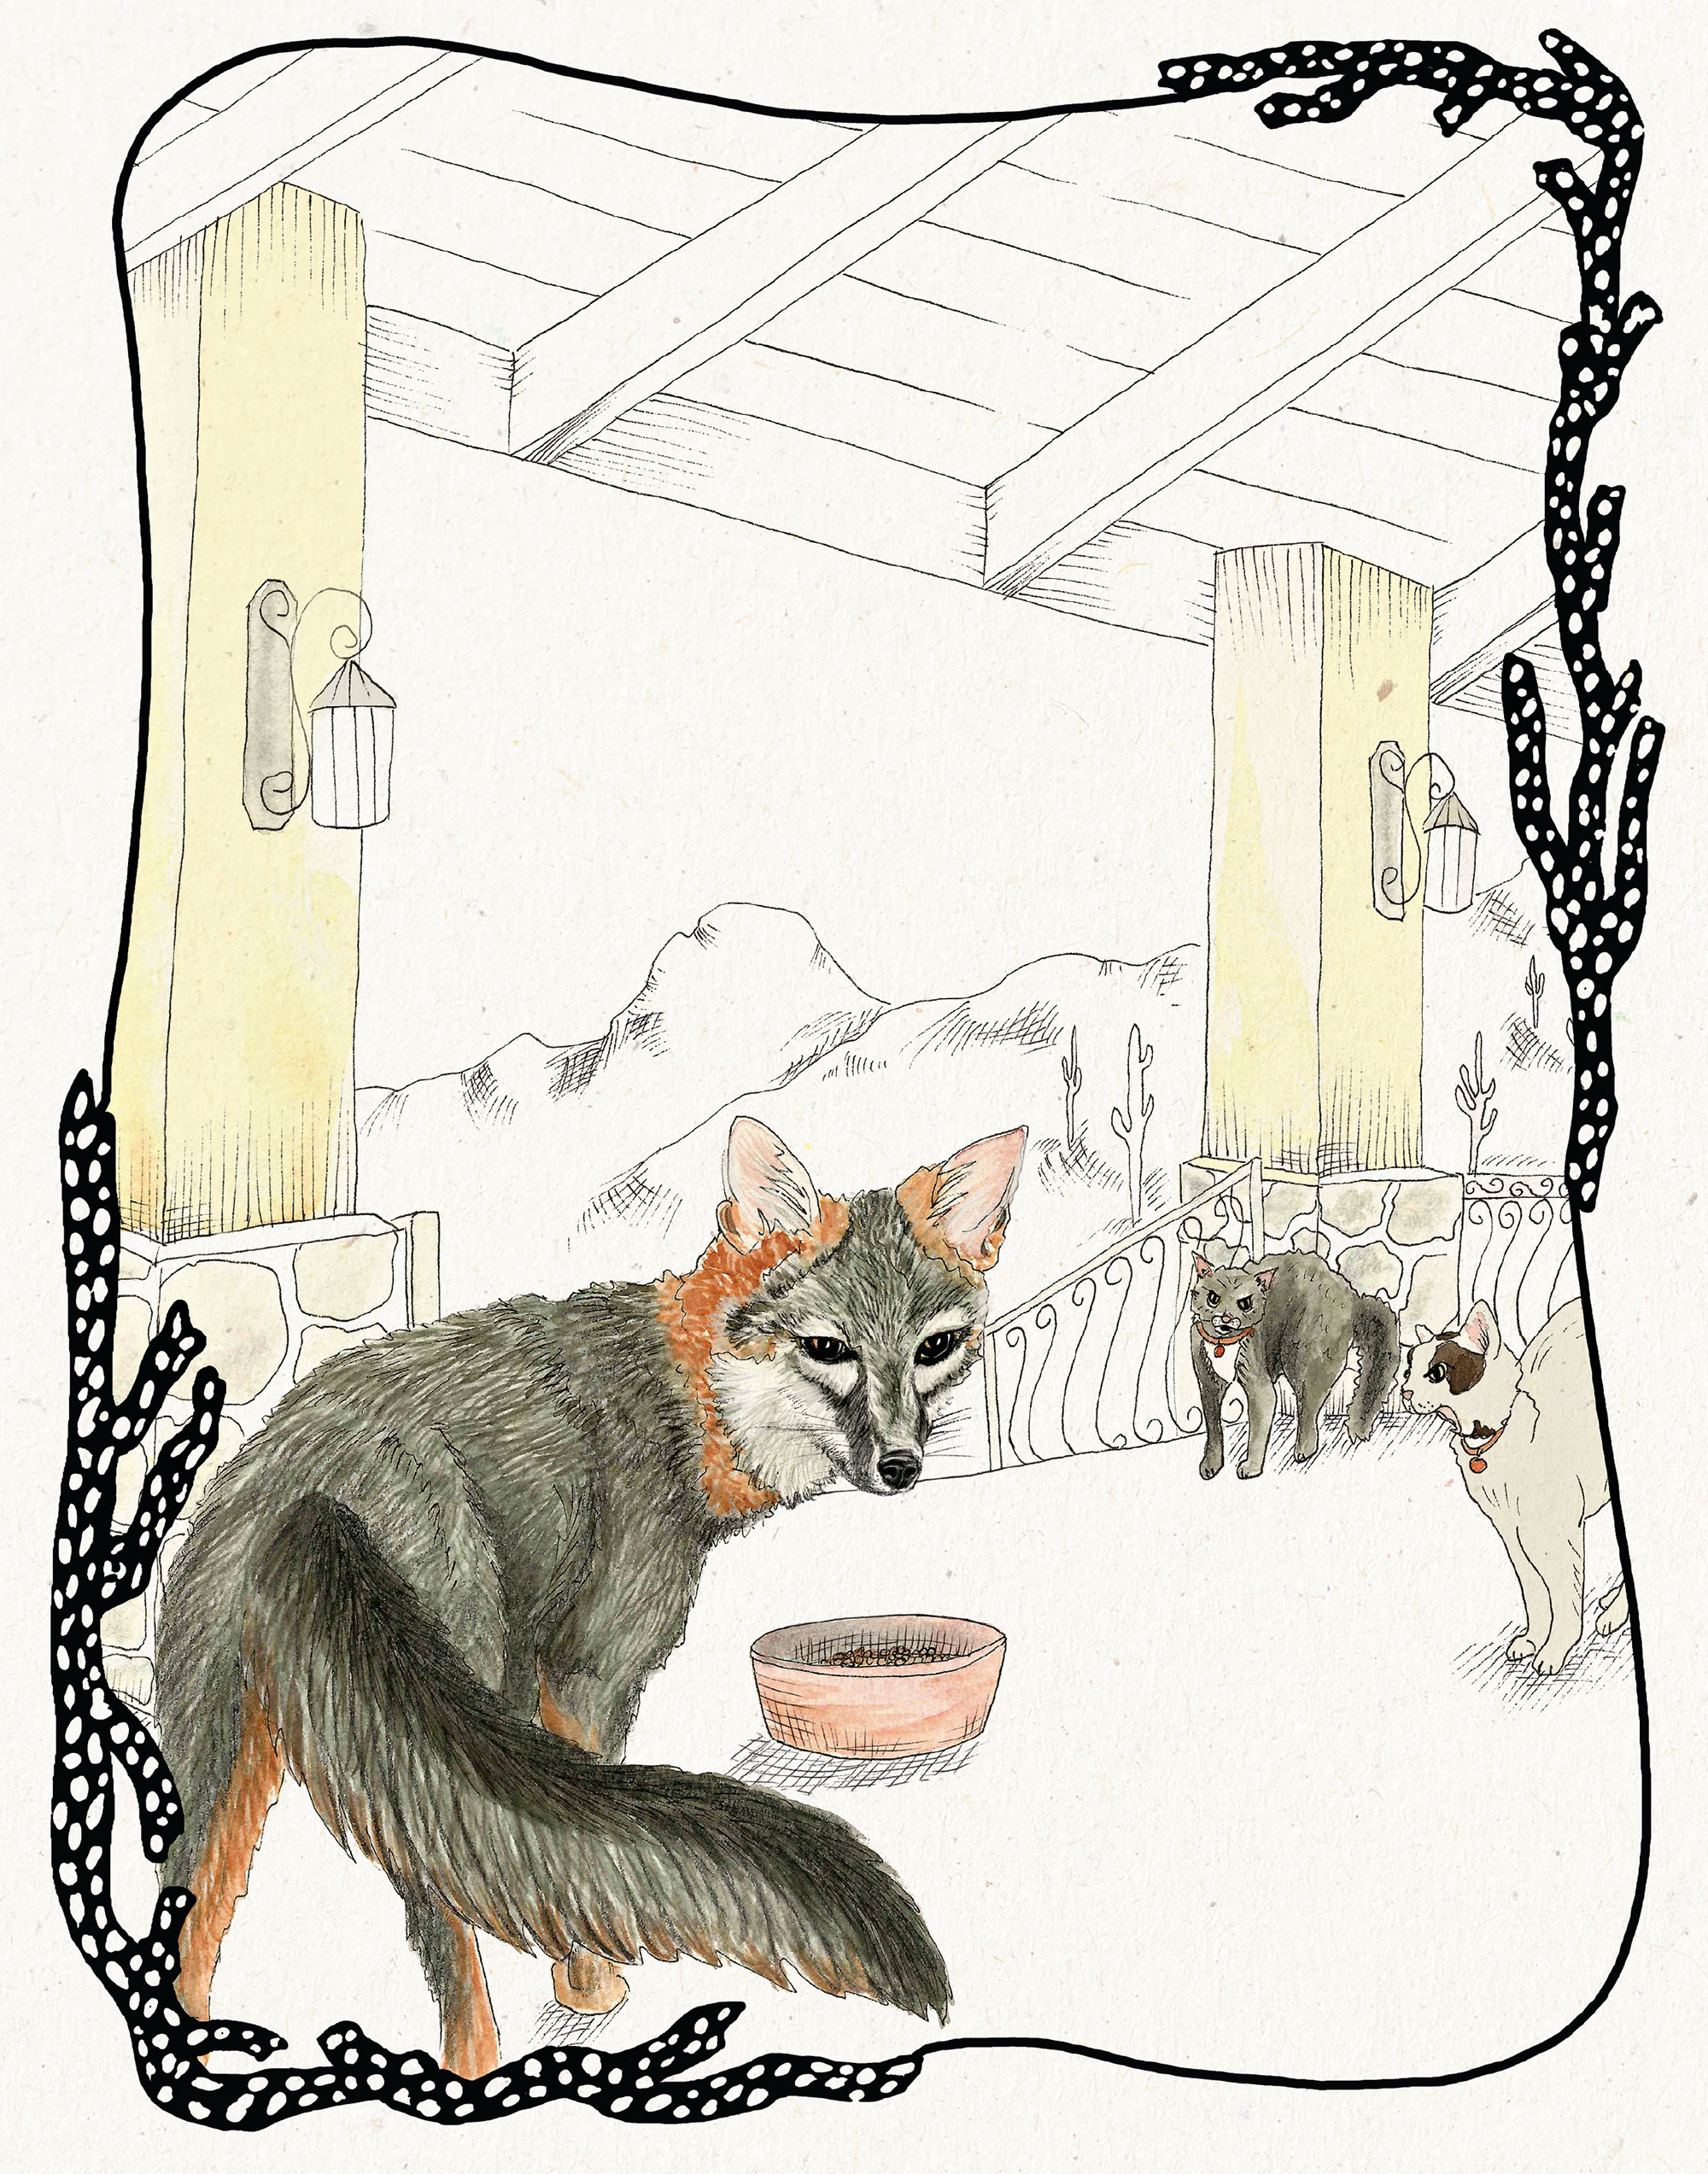 Illustration by Nathalie Aall